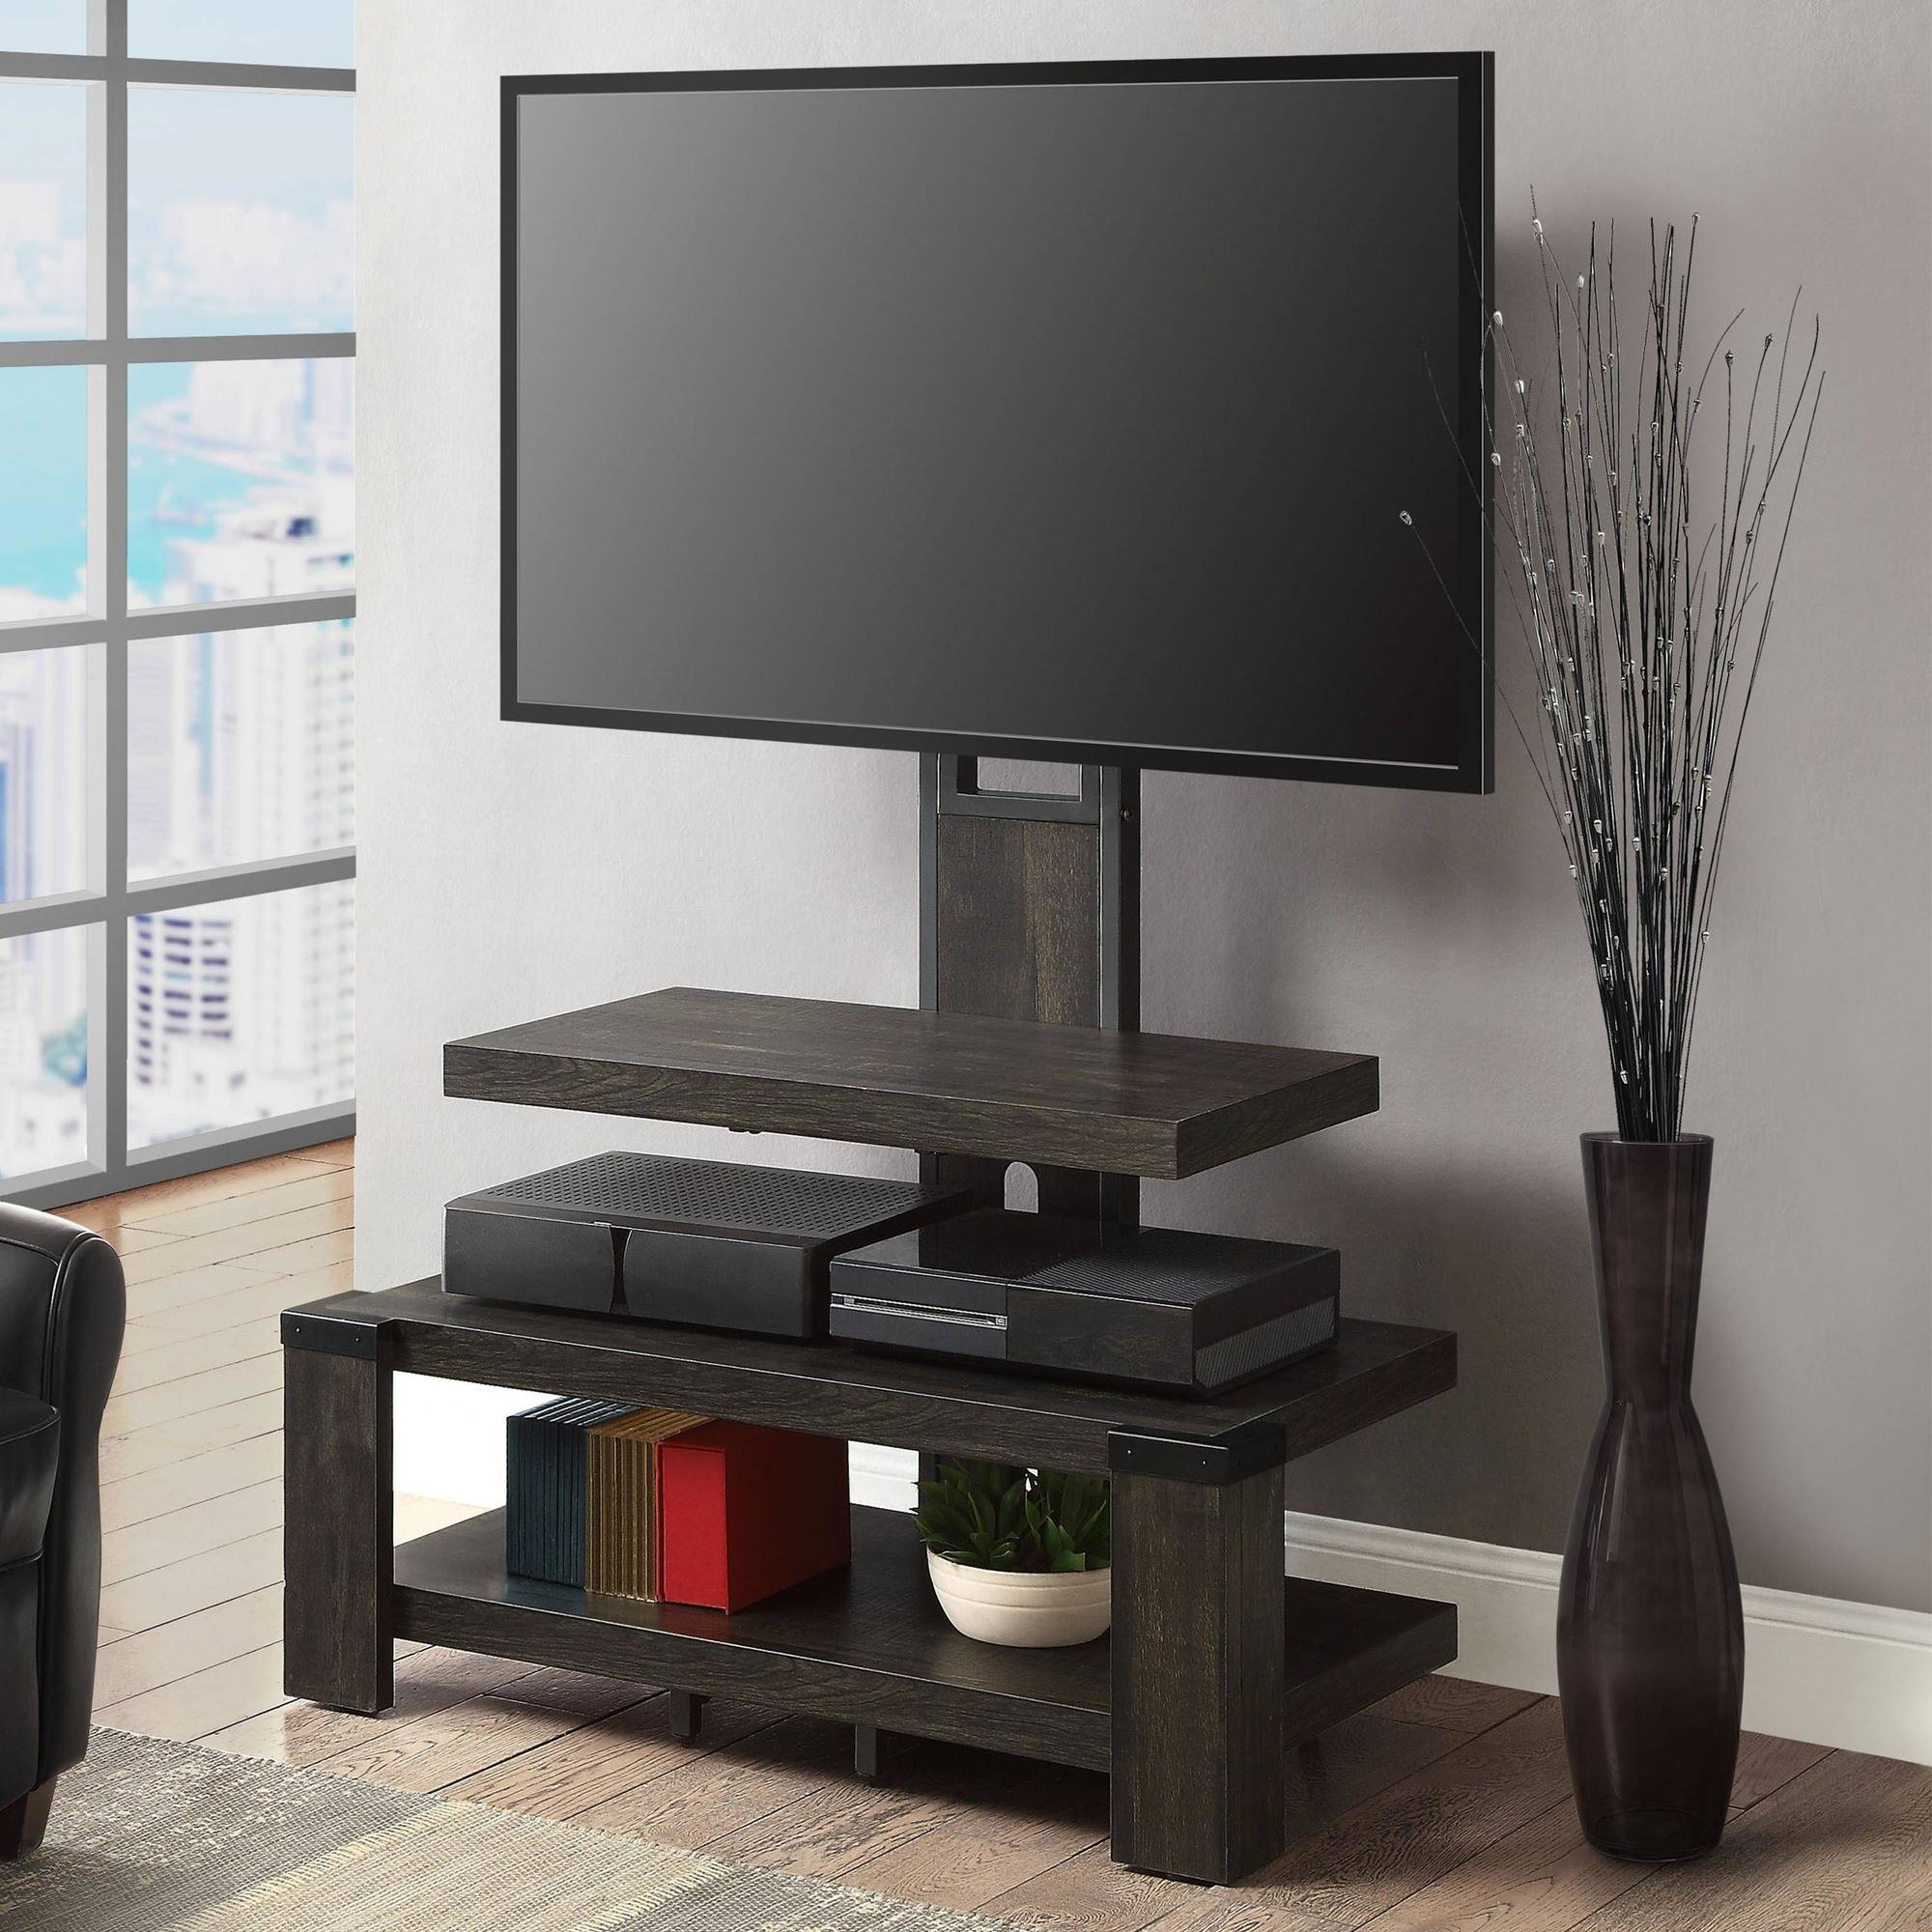 "Whalen 3-Shelf Television Stand with Floater Mount for TVs up to 50"", Perfect for Flat Screens, Weathered Dark Pine Finish"